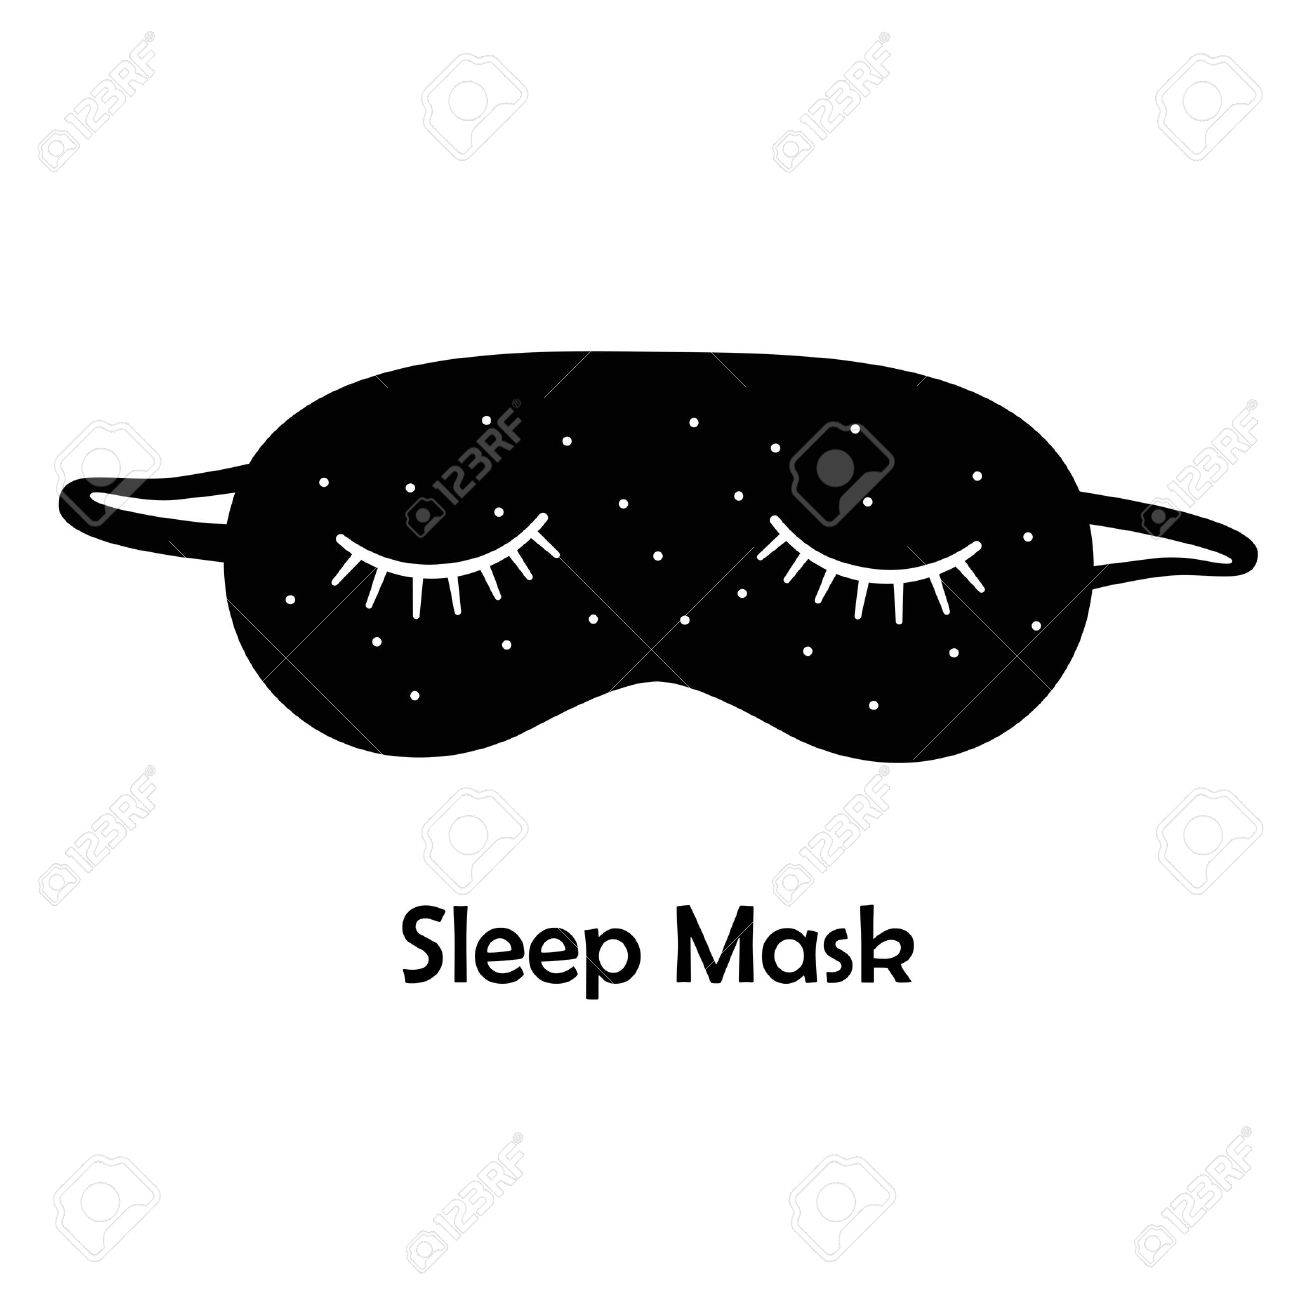 4ba5642a7e7 Black sleep mask   Sleeping mask on a white background Stock Photo -  55506358